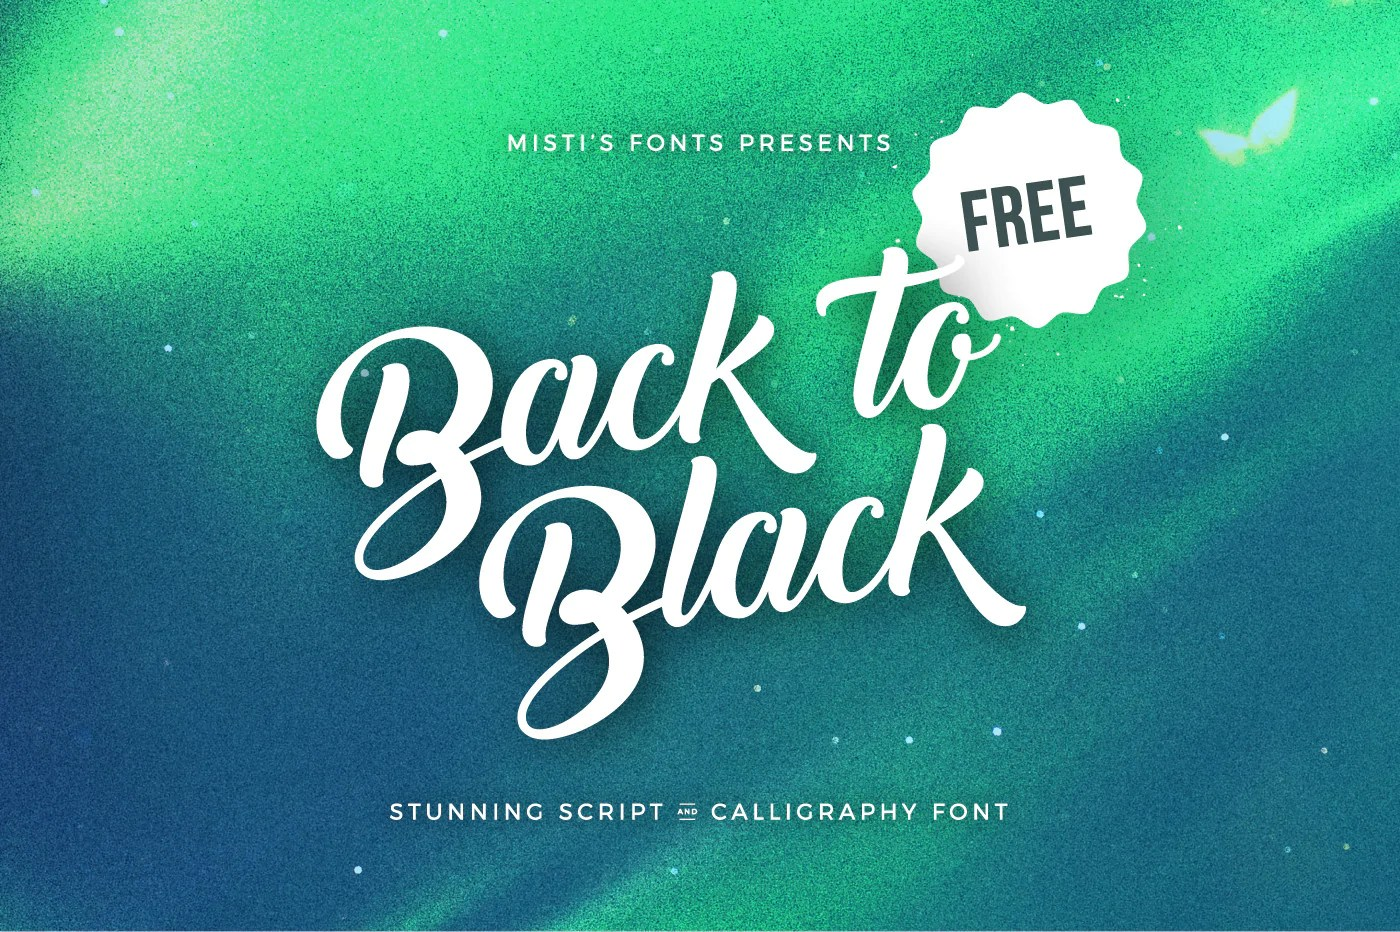 Back To Black Free Script Calligraphy Font Creativebooster